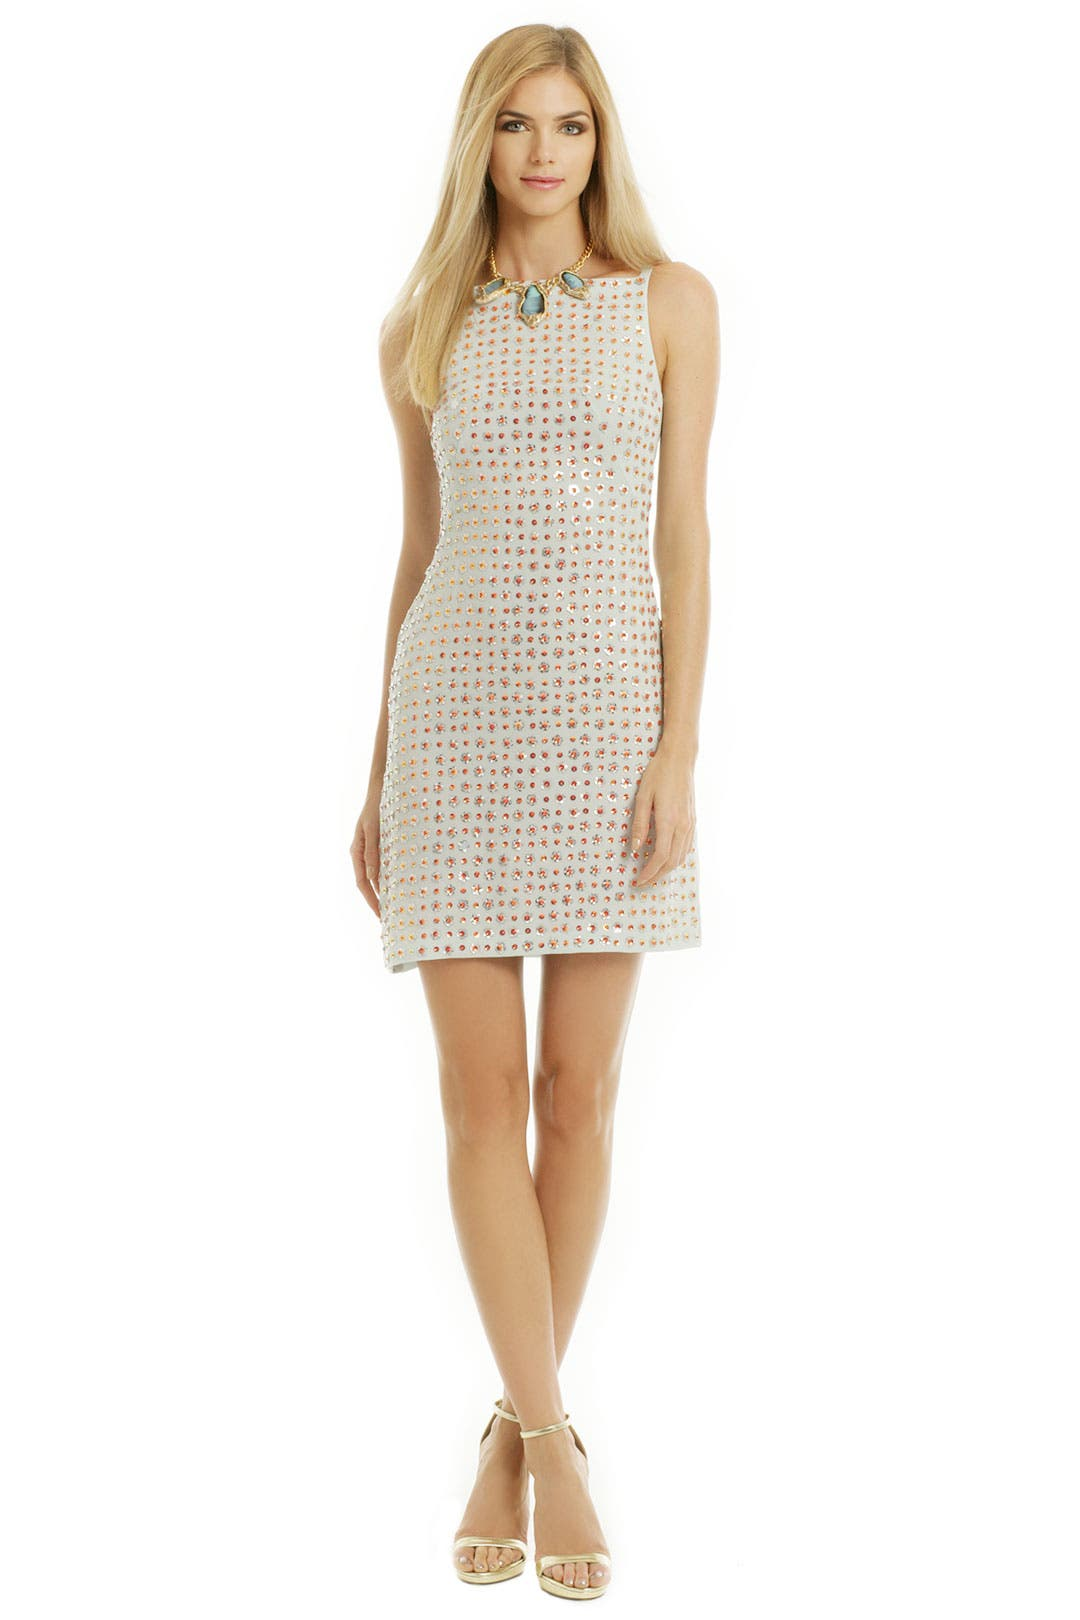 Starling Embellished Dress by Opening Ceremony